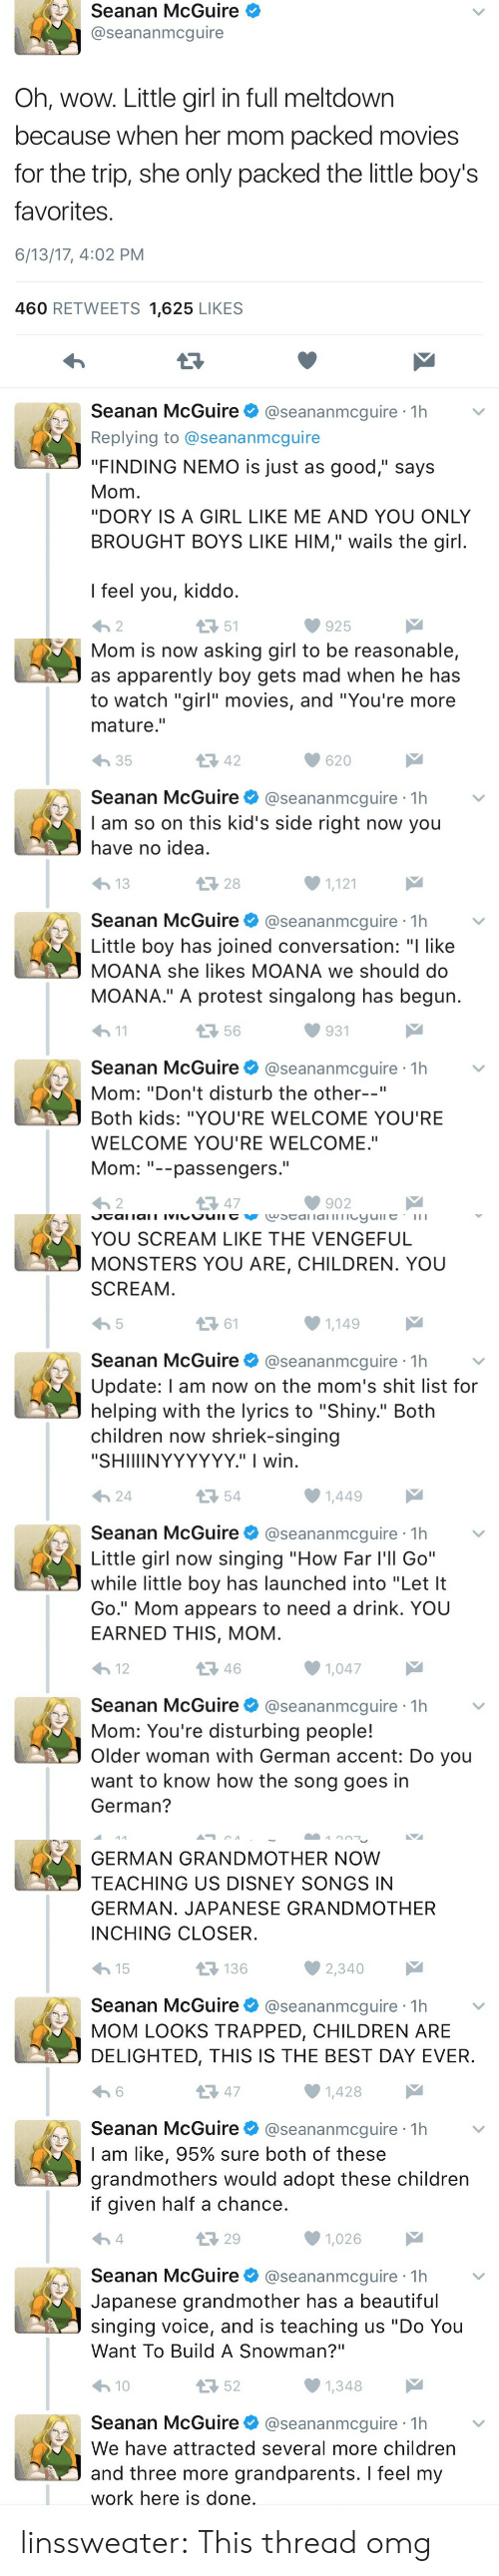 """Finding Nemo: Seanan McGuire  @seananmcguire  Oh, wow. Little girl in full meltdown  because when her mom packed movies  for the trip, she only packed the little boy's  favorites  6/13/17, 4:02 PM  460 RETWEETS 1,625 LIKES  Seanan McGuire@seananmcguire 1h  Replying to @seananmcguire  """"FINDING NEMO is just as good,"""" says  Mom  """"DORY IS A GIRL LIKE ME AND YOU ONLY  BROUGHT BOYS LIKE HIM,"""" wails the girl  I feel you, kiddo  わ2  51  925   Mom is now asking girl to be reasonable,  as apparently boy gets mad when he has  to watch """"girl"""" movies, and """"You're more  mature.""""  わ35  42  620  Seanan McGuire@seananmcguire 1h  I am so on this kid's side right now you  have no idea  28  1,121  Seanan McGuire@seananmcguire 1h  Little boy has joined conversation: """"I like  MOANA she likes MOANA we should do  MOANA."""" A protest singalong has begun  h1  56  931  Seanan McGuire@seananmcguire 1h  Mom: """"Don't disturb the other--""""  Both kids: """"YOU'RE WELCOME YOU'RE  WELCOME YOU'RE WELCOME.""""  Mom--passengers.  わ2  다 47  902   YOU SCREAM LIKE THE VENGEFUL  MONSTERS YOU ARE, CHILDREN. YOU  SCREAM  ロ61  1,149  Seanan McGuire@seananmcguire 1h  Update: l am now on the mom's shit list for  helping with the lyrics to """"Shiny."""" Both  children now shriek-singing  """"SHIIIINYYYYYY."""" I wirn  24  54  Seanan McGuireネ@seananmcgure·1h  Little girl now singing """"How Far l'll Go""""  while little boy has launched into """"Let It  Go."""" Mom appears to need a drink. YOU  EARNED THIS, MOM  12  46  1,047  Seanan McGuire@seananmcguire 1h  Mom: You're disturbing people!  Older woman with German accent: Do you  want to know how the song goes in  German?   GERMAN GRANDMOTHER NOW  TEACHING US DISNEY SONGS IN  GERMAN. JAPANESE GRANDMOTHER  INCHING CLOSER  15  136  Seanan McGuire@seananmcguire 1h  MOM LOOKS TRAPPED, CHILDREN ARE  DELIGHTED, THIS IS THE BEST DAY EVER  13 47  1,428  Seanan McGuire@seananmcguire 1h  I am like, 95% sure both of these  grandmothers would adopt these children  if given half a chance  29  1,026  Seanan M"""